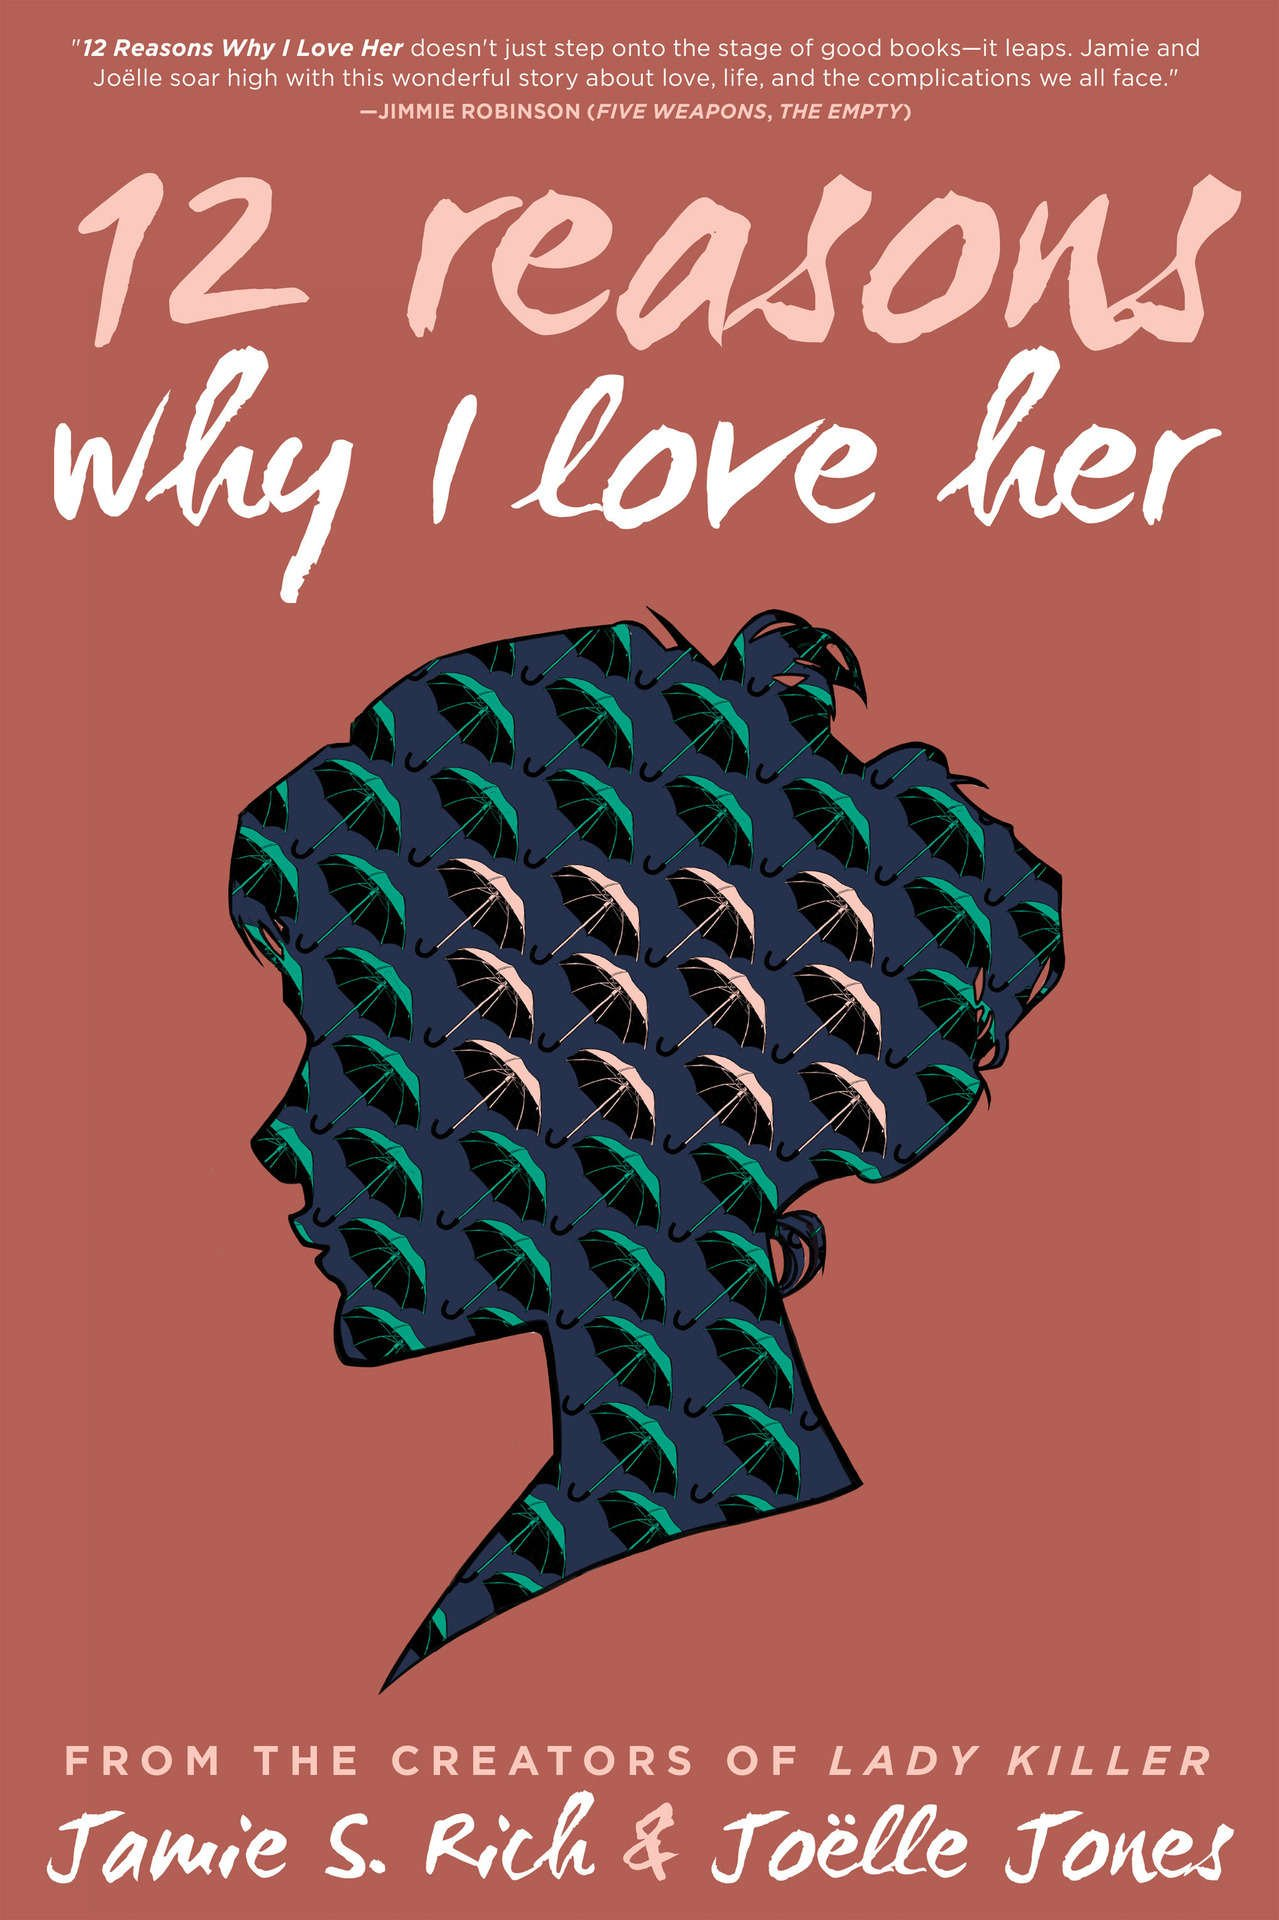 12 Reasons Why I Love Her Cover